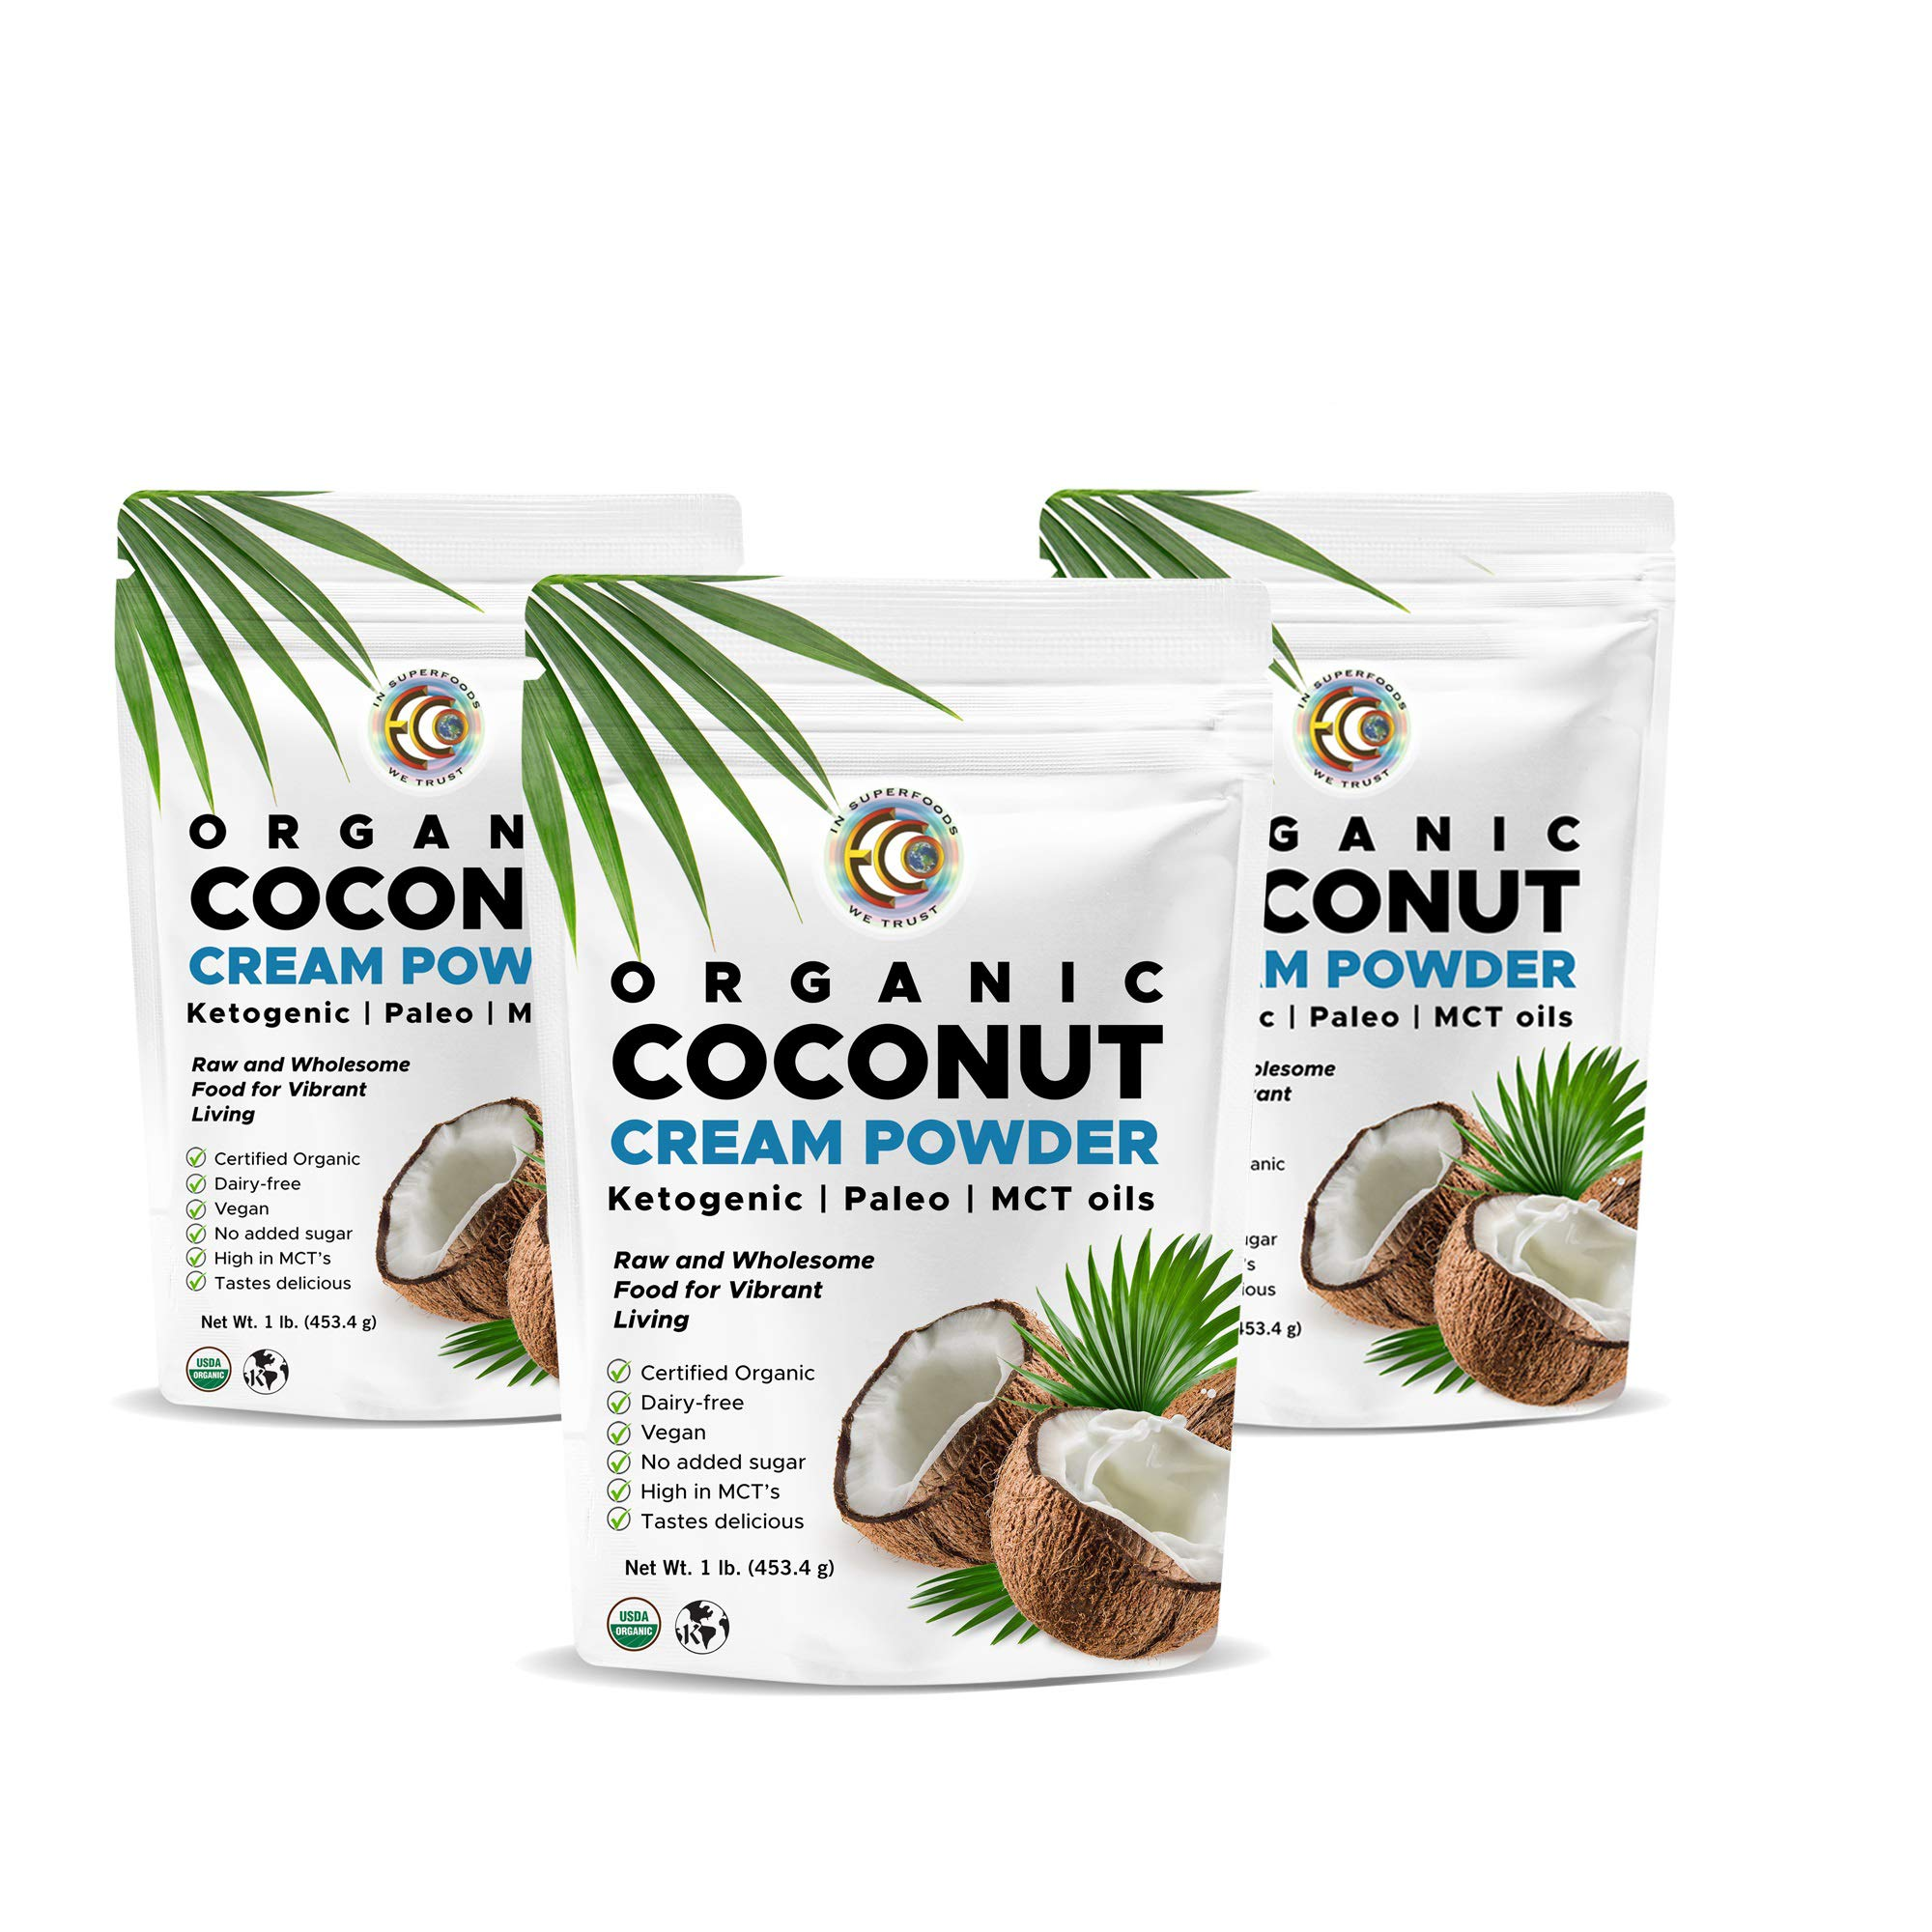 Organic Premium Coconut Milk Powder | Perfect Keto Powdered Coffee Creamer | High in MCT Oil | Vegan | No Added Sugar | Dehydrated | Vegan | Gluten and Dairy Free - (3 Pack) by Earth Circle Organics